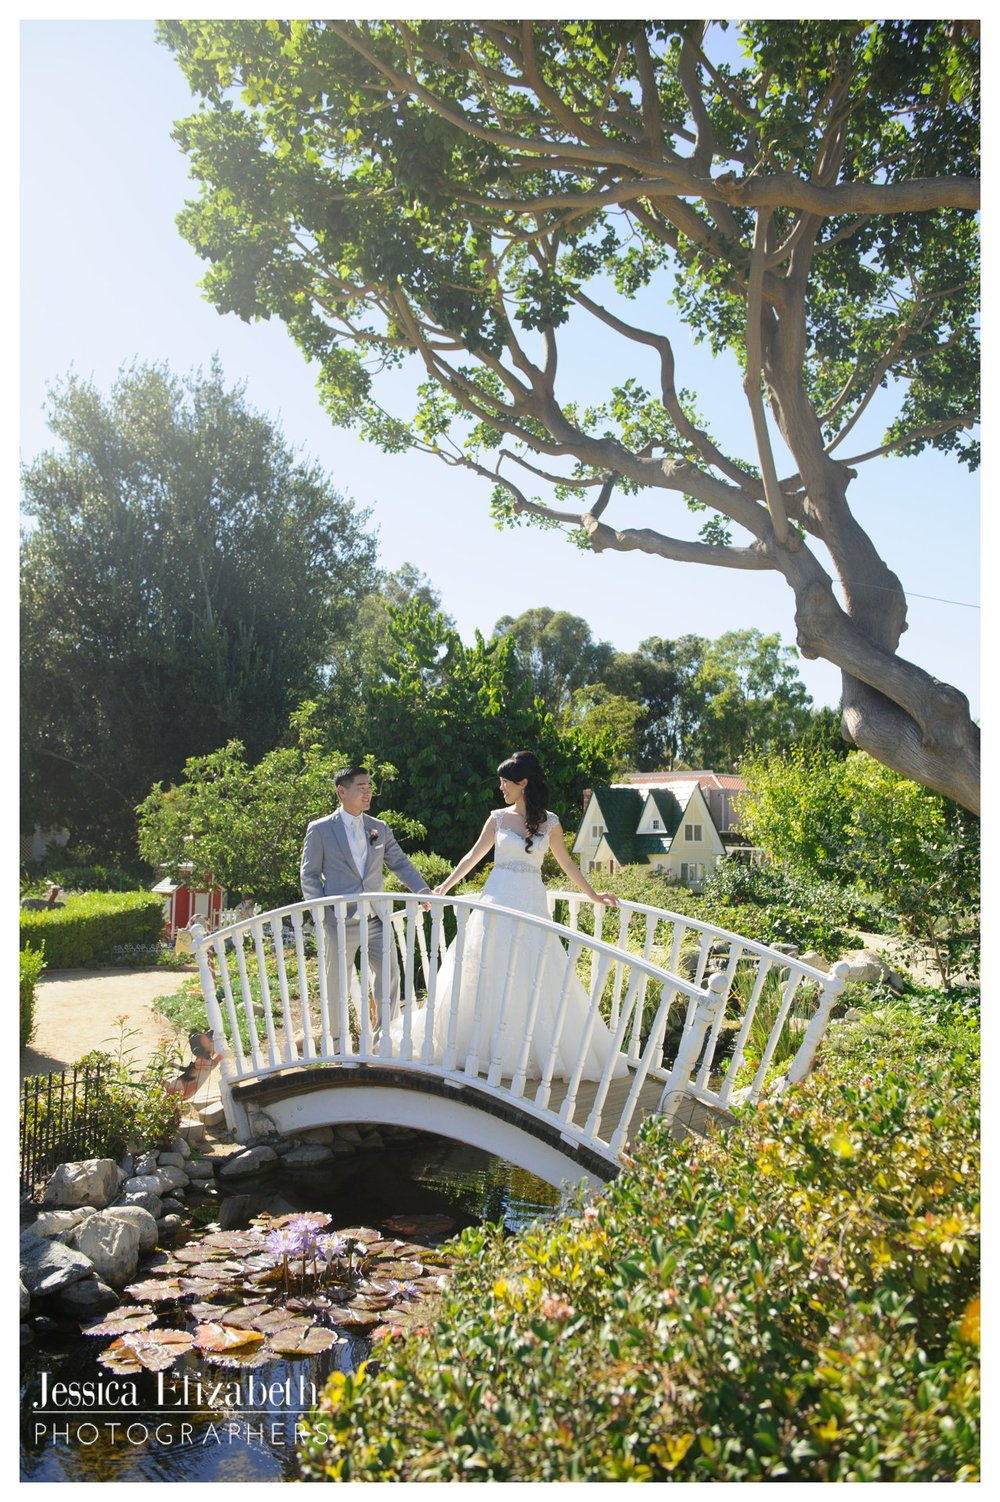 14-South-Coast-Botanic-Garden-Palos-Verdes-Wedding-Photography-by-Jessica-Elizabeth.jpg